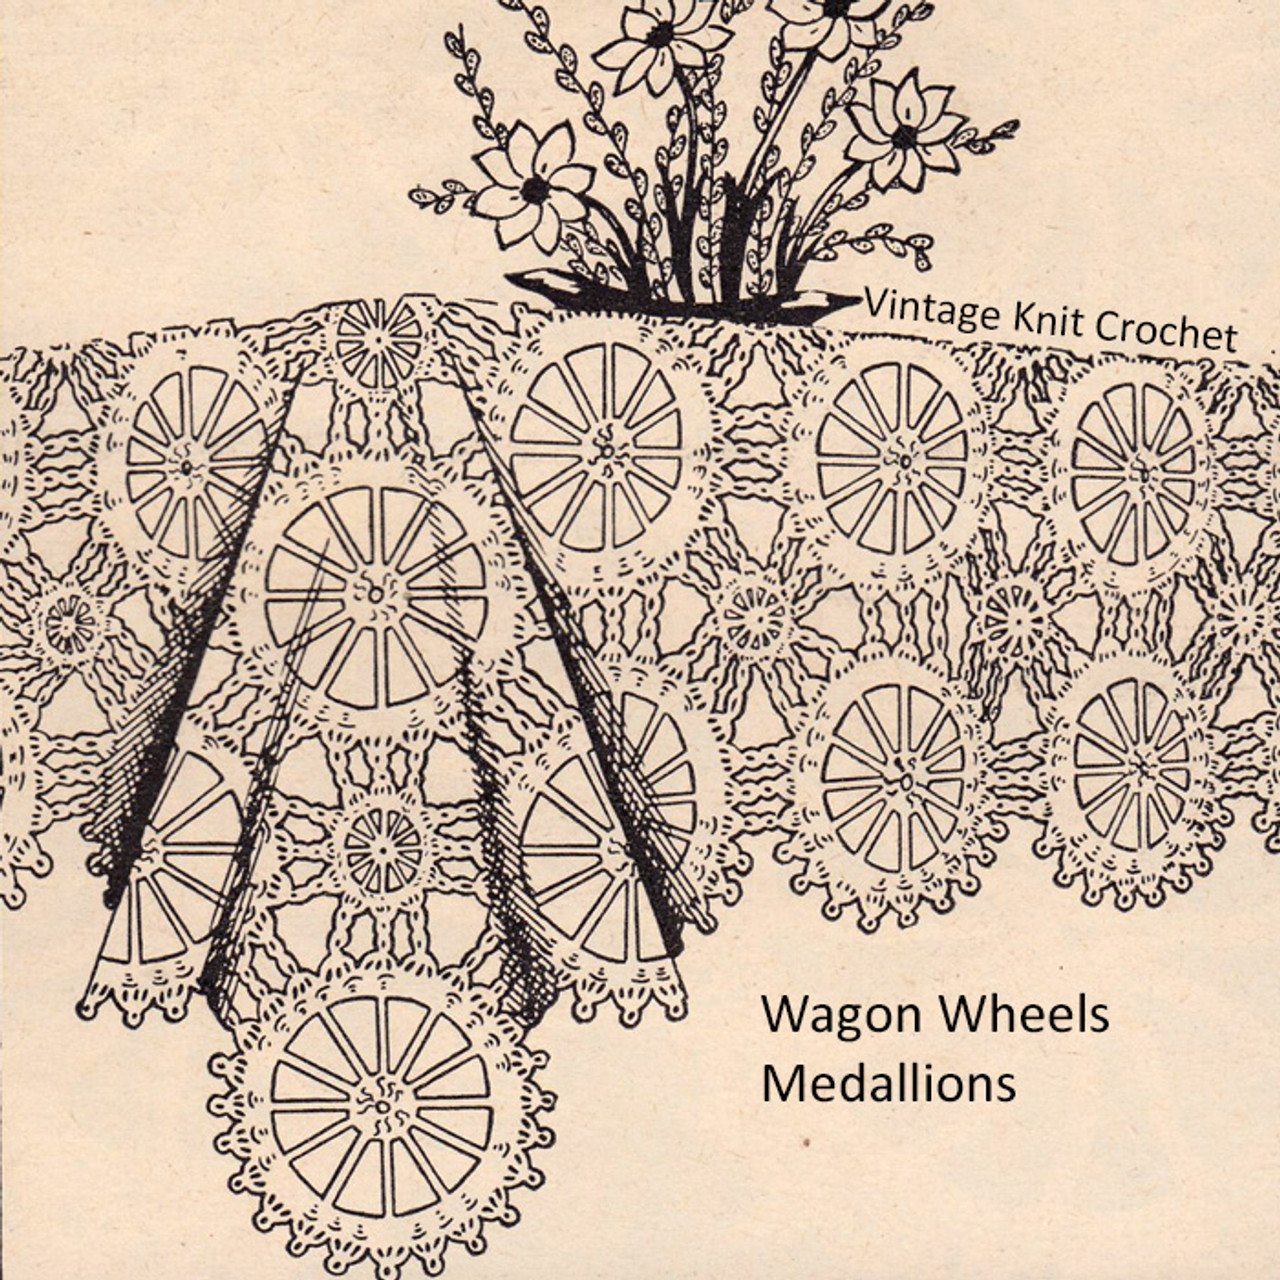 Crocheted Wagon Wheels Tablecloth Pattern